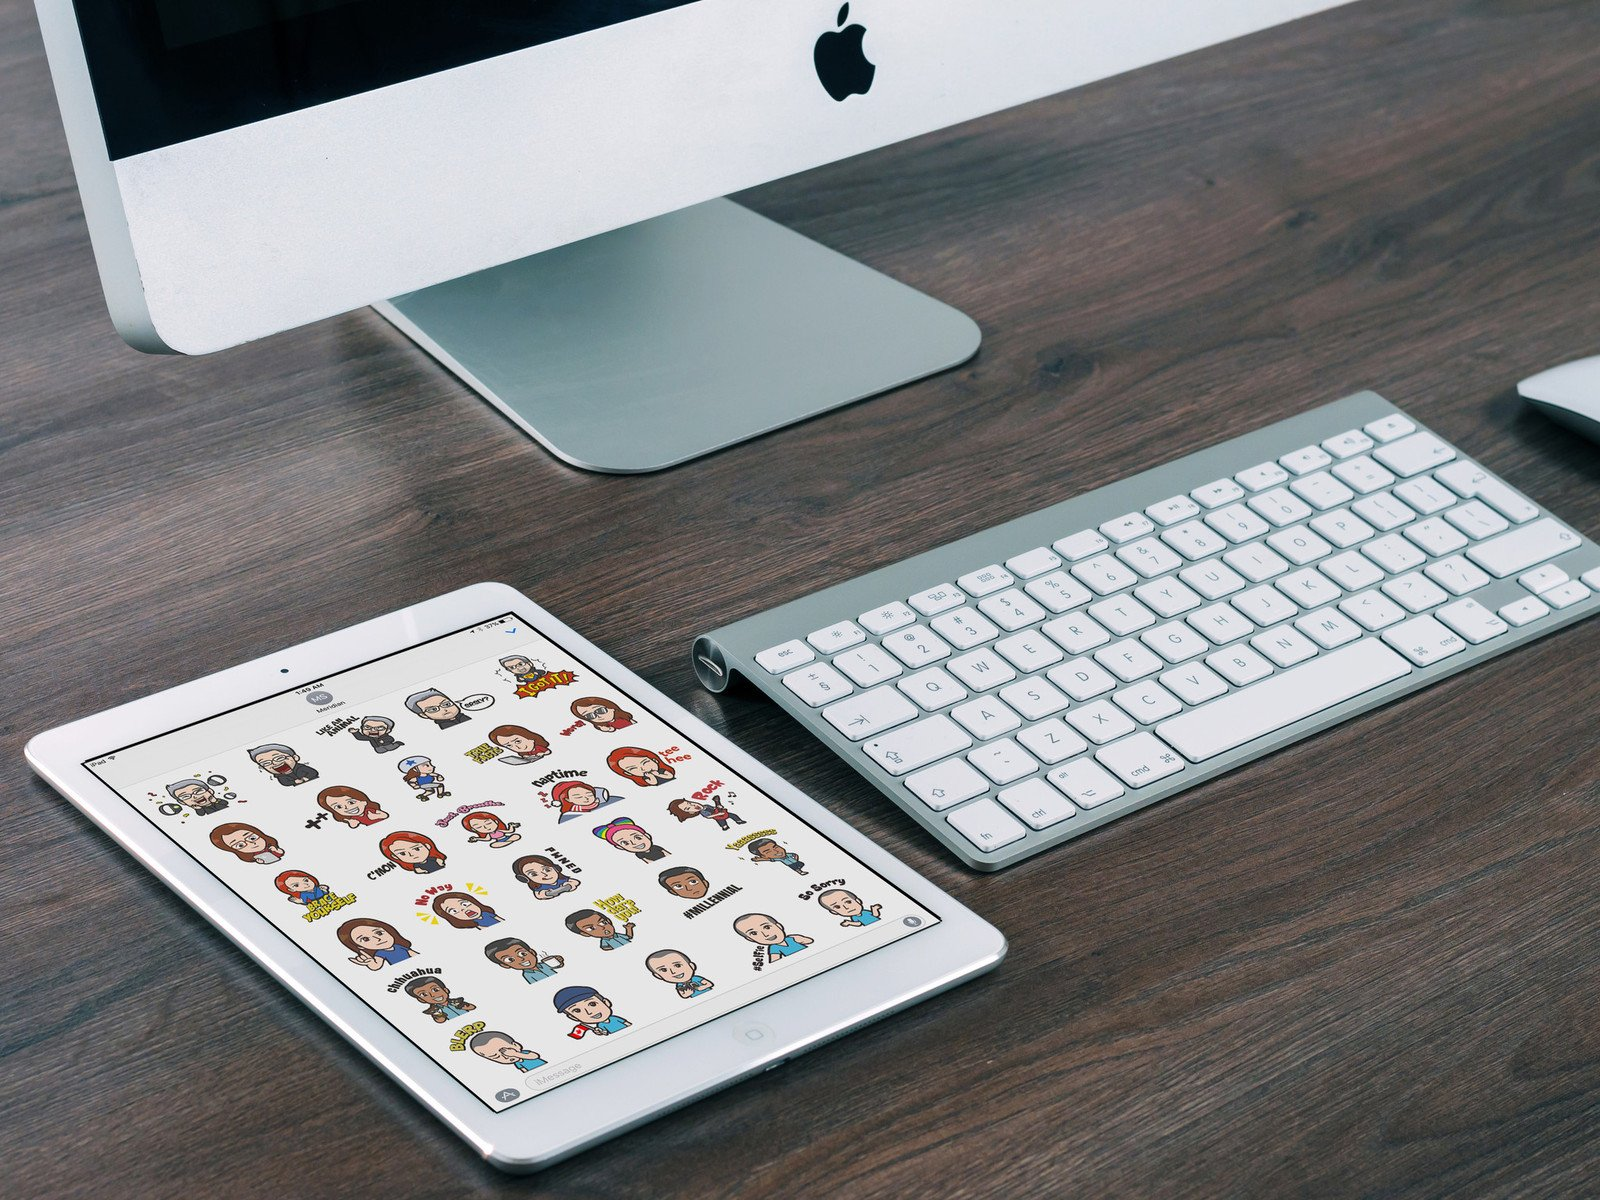 iMore Sticker Pack on an iPad sitting on a desk.